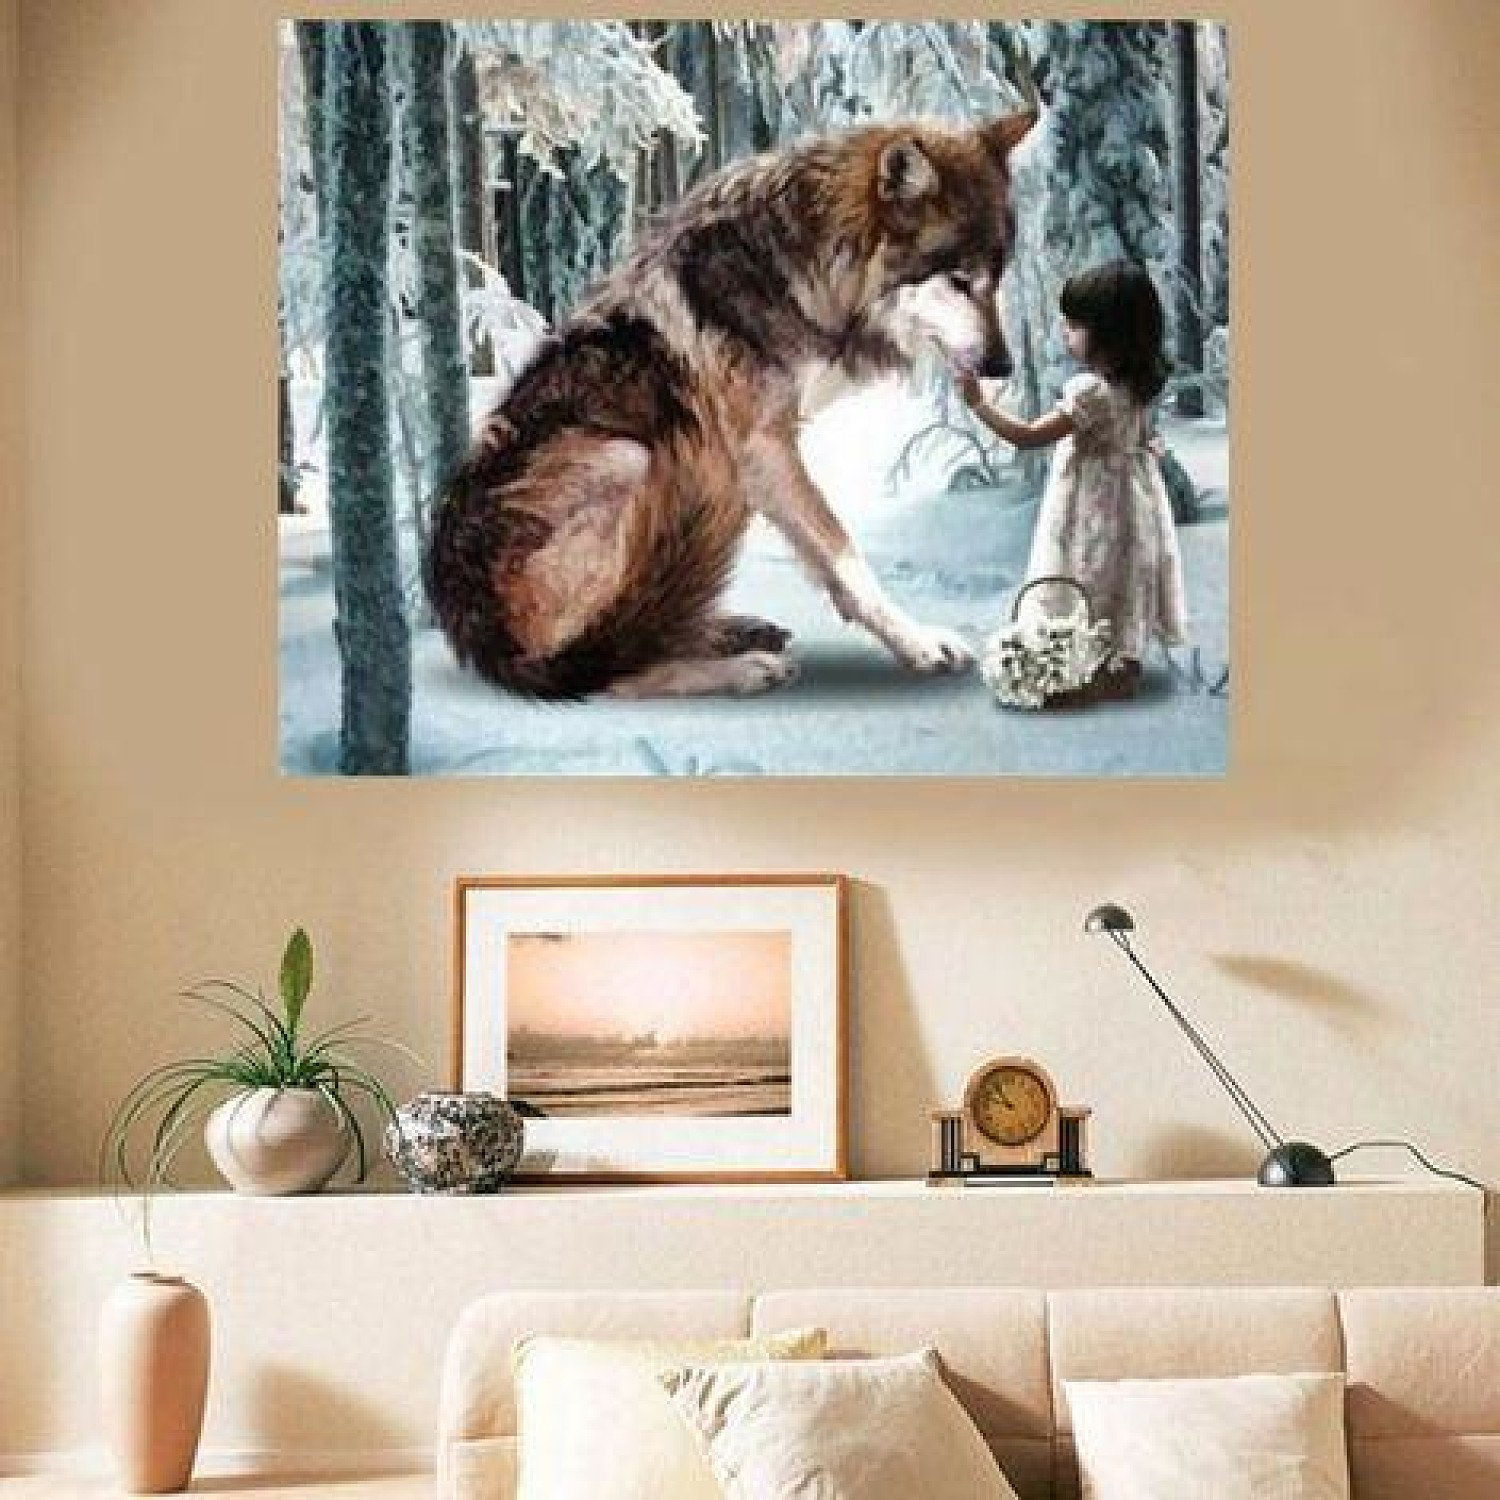 30 * 40 Cm Diy 5D Diamond Wolf Girl Embroidery Painting Paste Stitch House